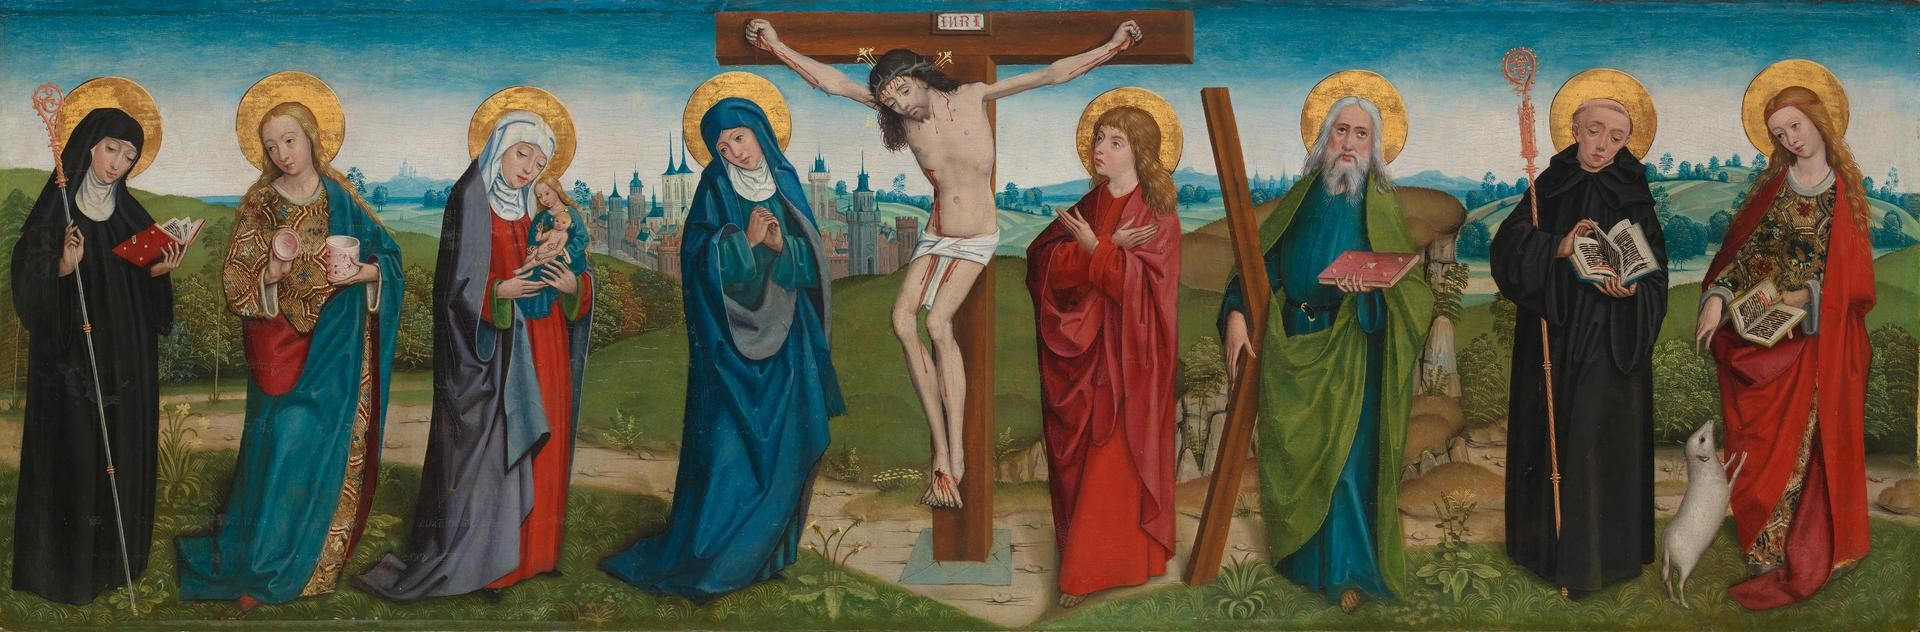 The Crucifixion with Saints by Probably by the Master of Liesborn